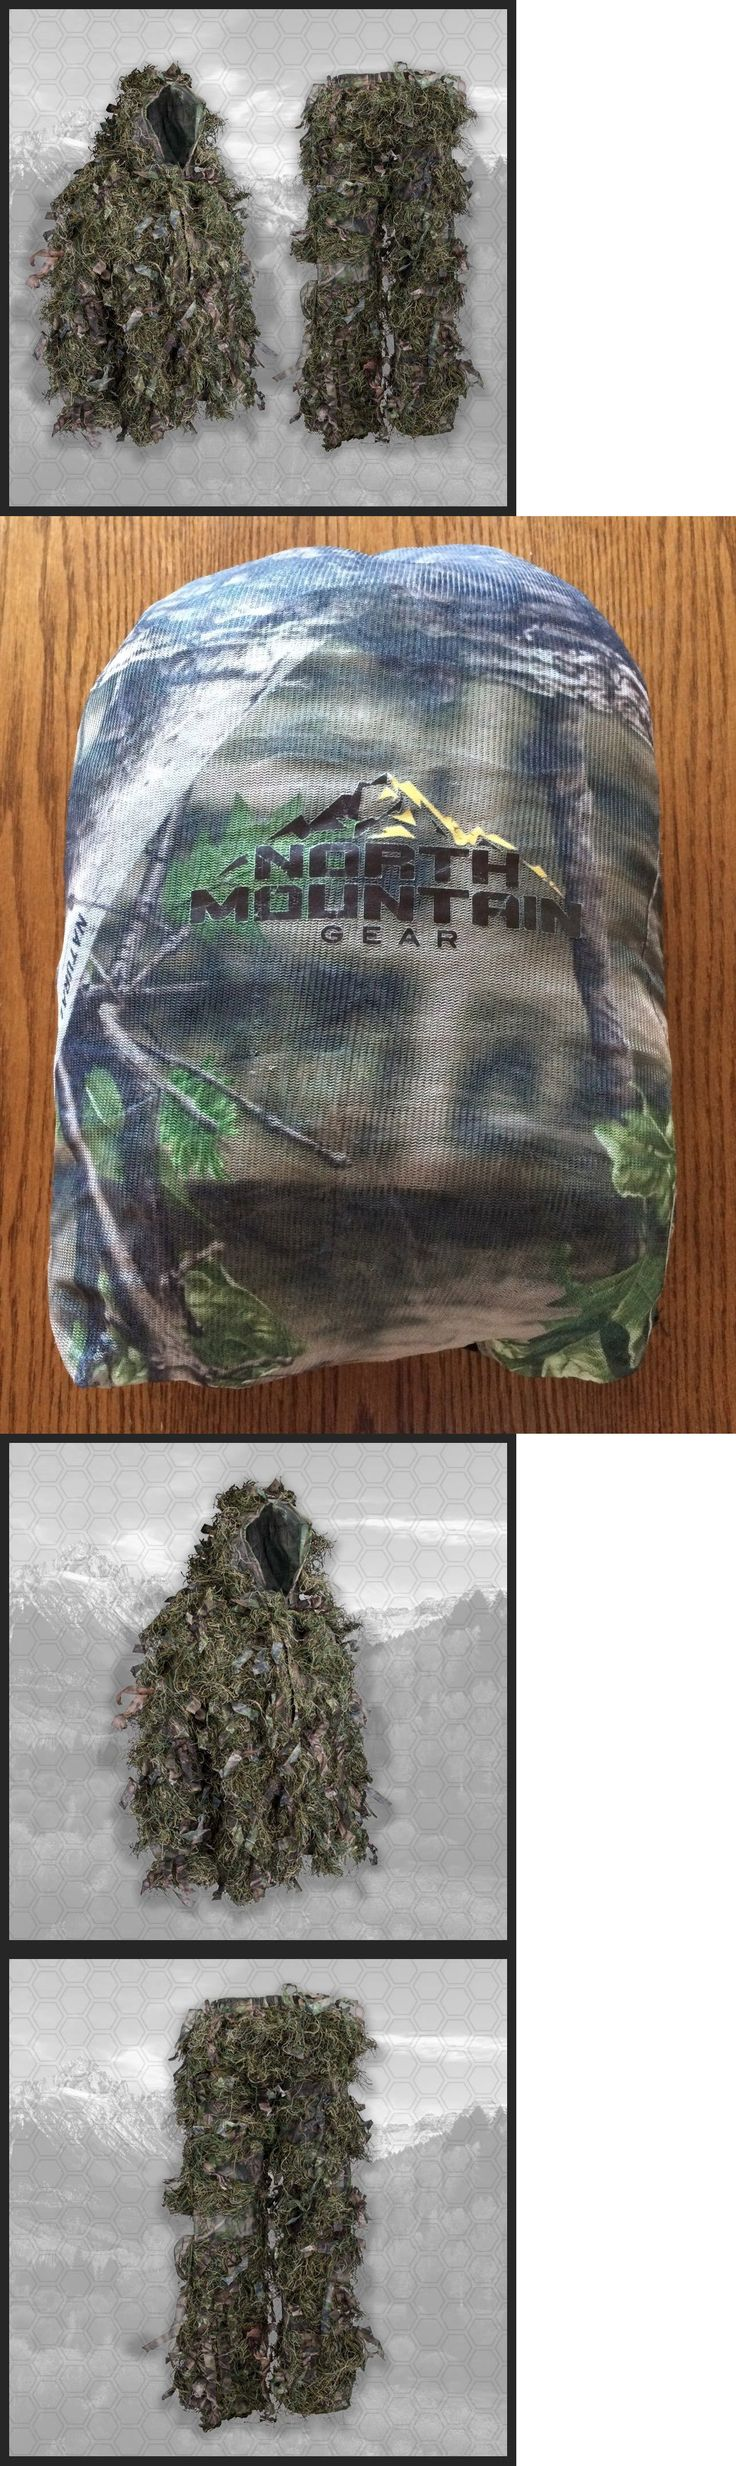 Ghillie Suits 177870: New Hybrid Ghillie Suit North Mtn Gear Hunting Camo Od Foliage Hunters Tactical -> BUY IT NOW ONLY: $69.99 on eBay!